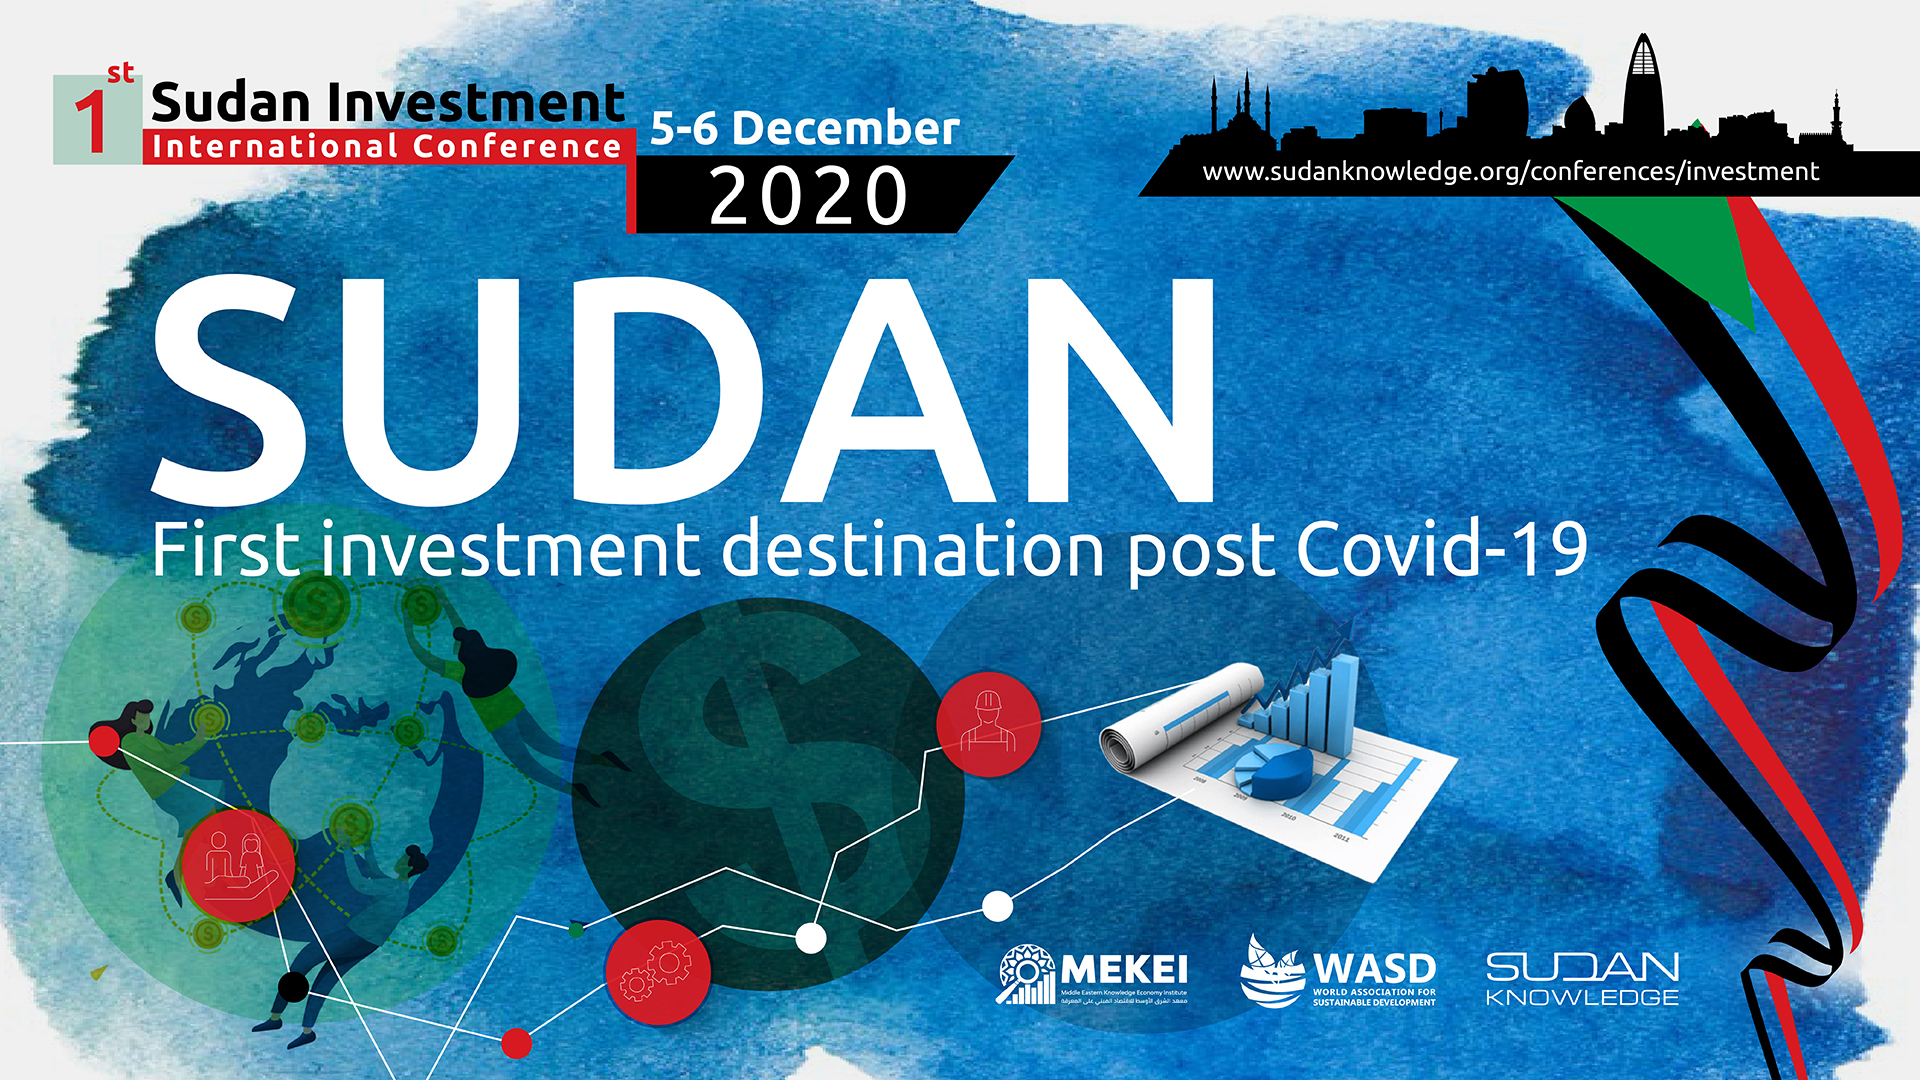 1st Sudan Investment International Conference 2020<div style='clear:both;width:100%;height:0px;'></div><span class='cat'>Sustainability Conferences</span>